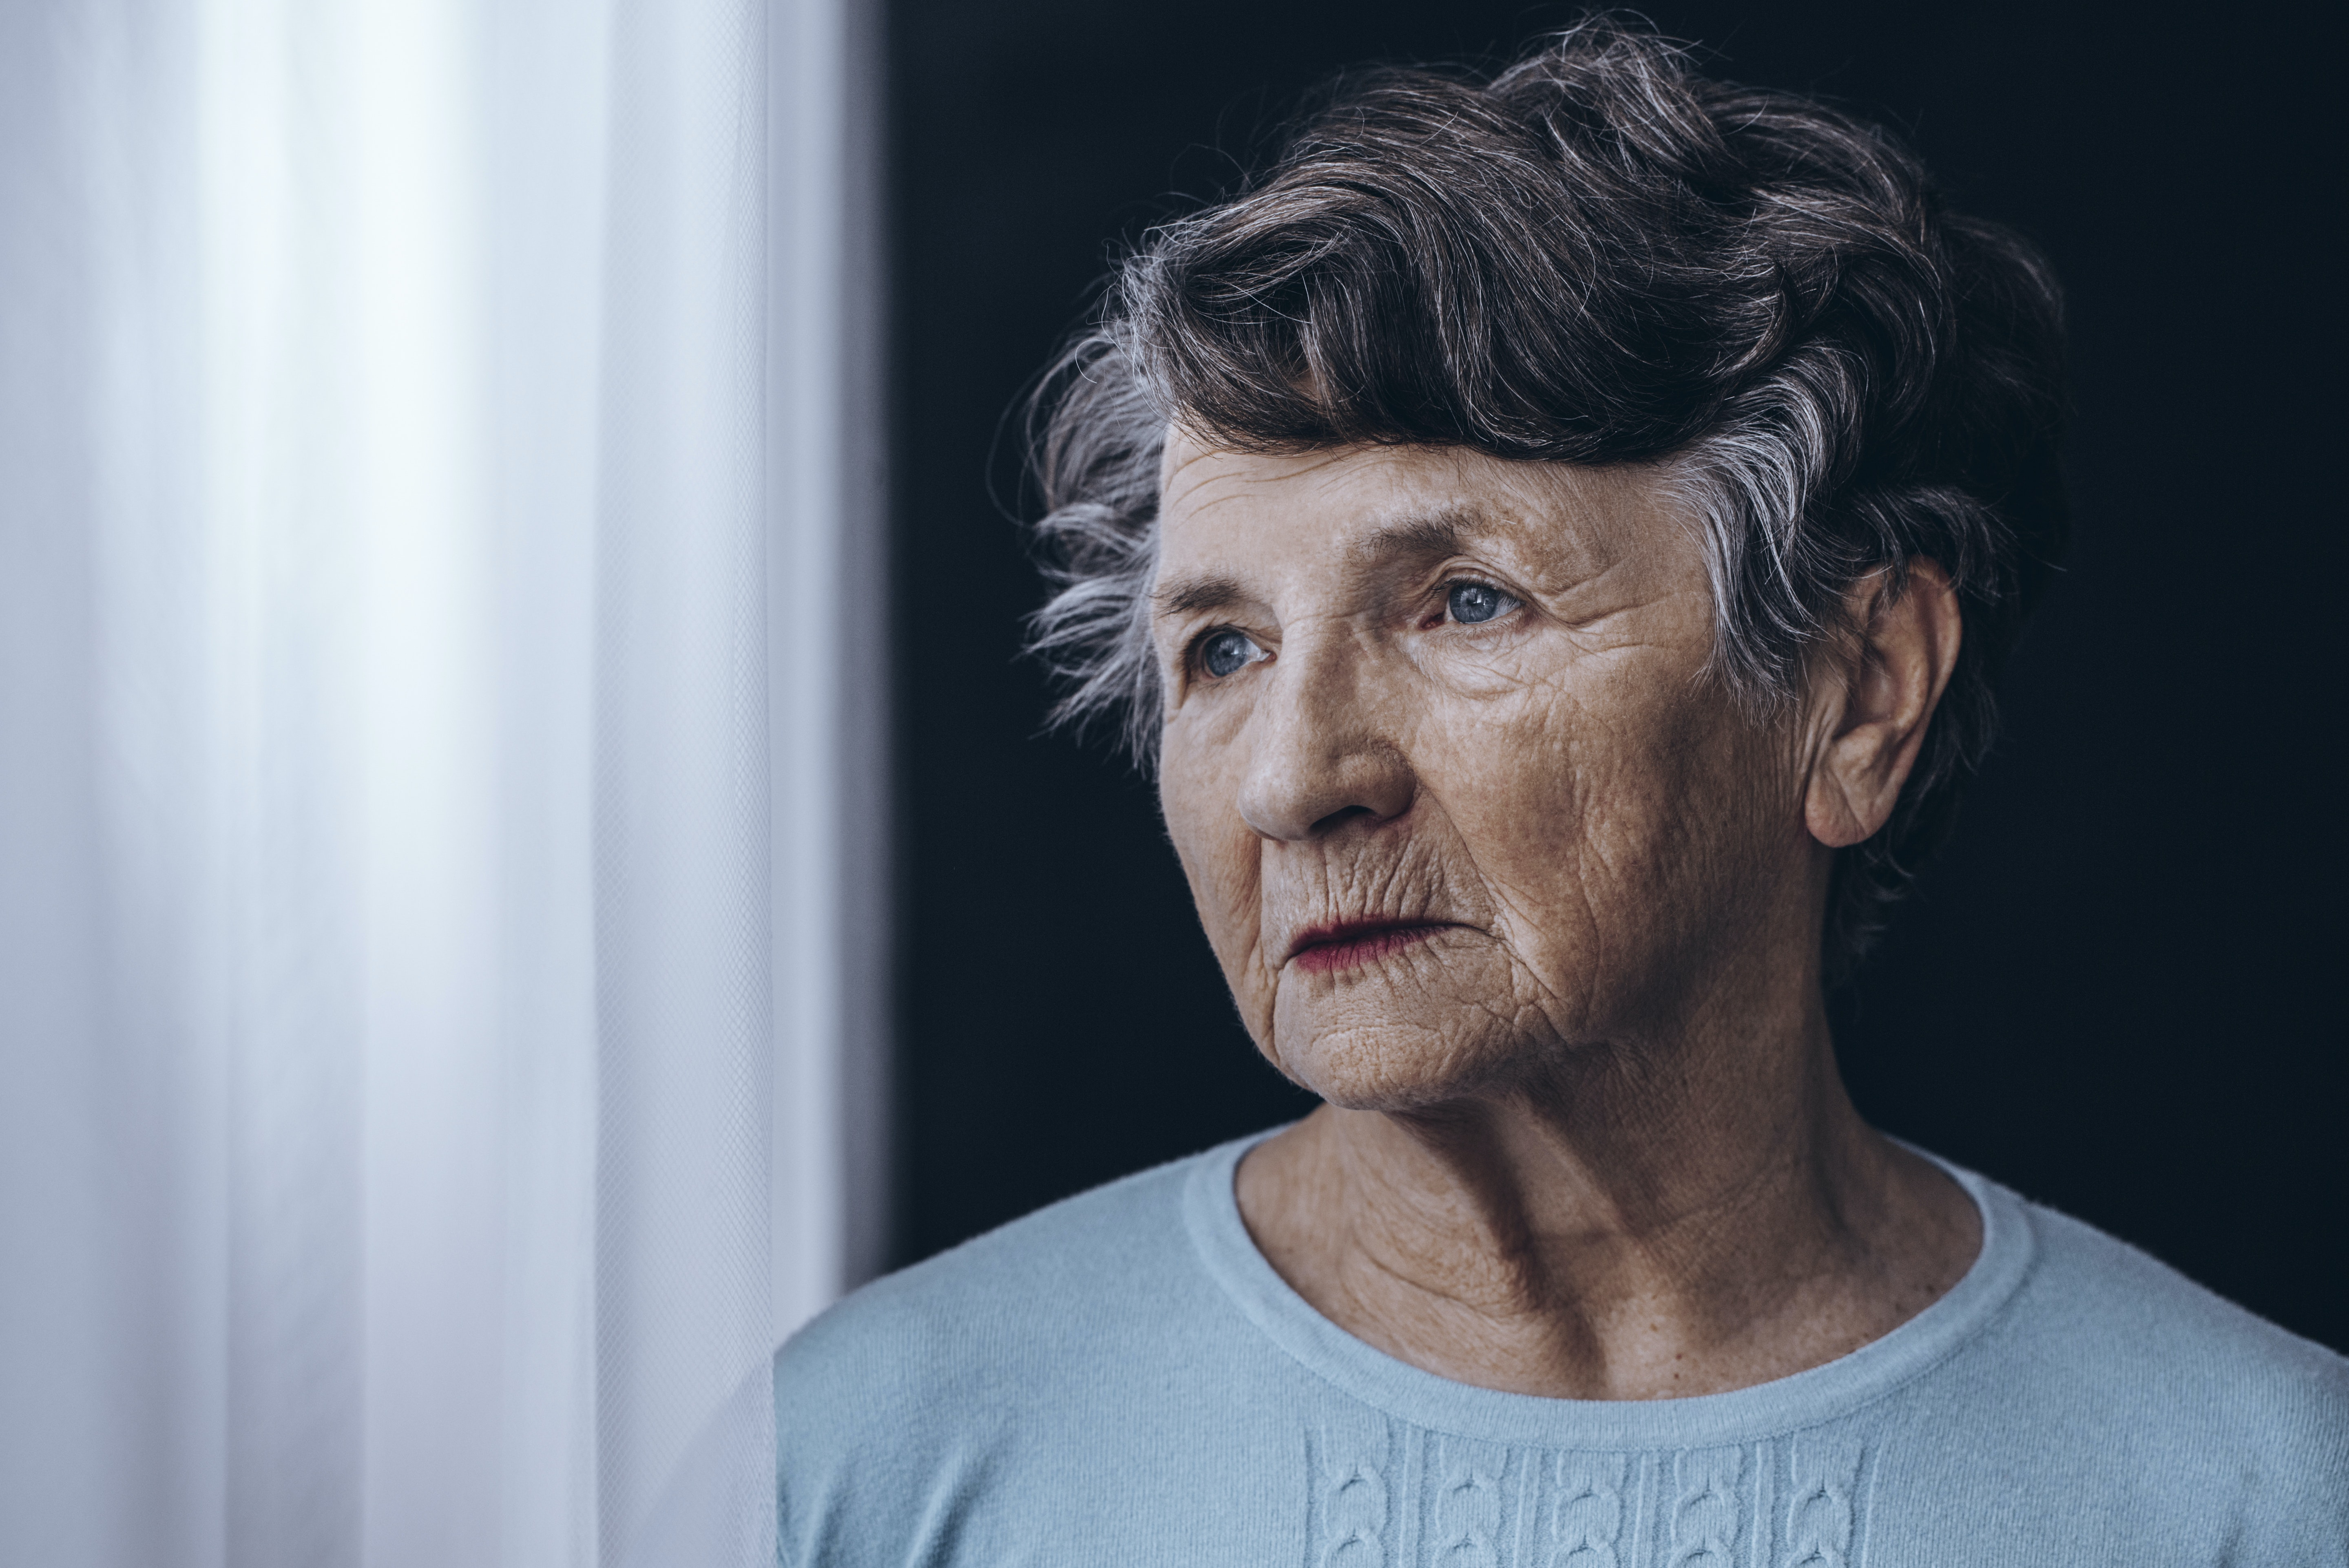 There's almost always a better way to care for nursing home residents than restraining them